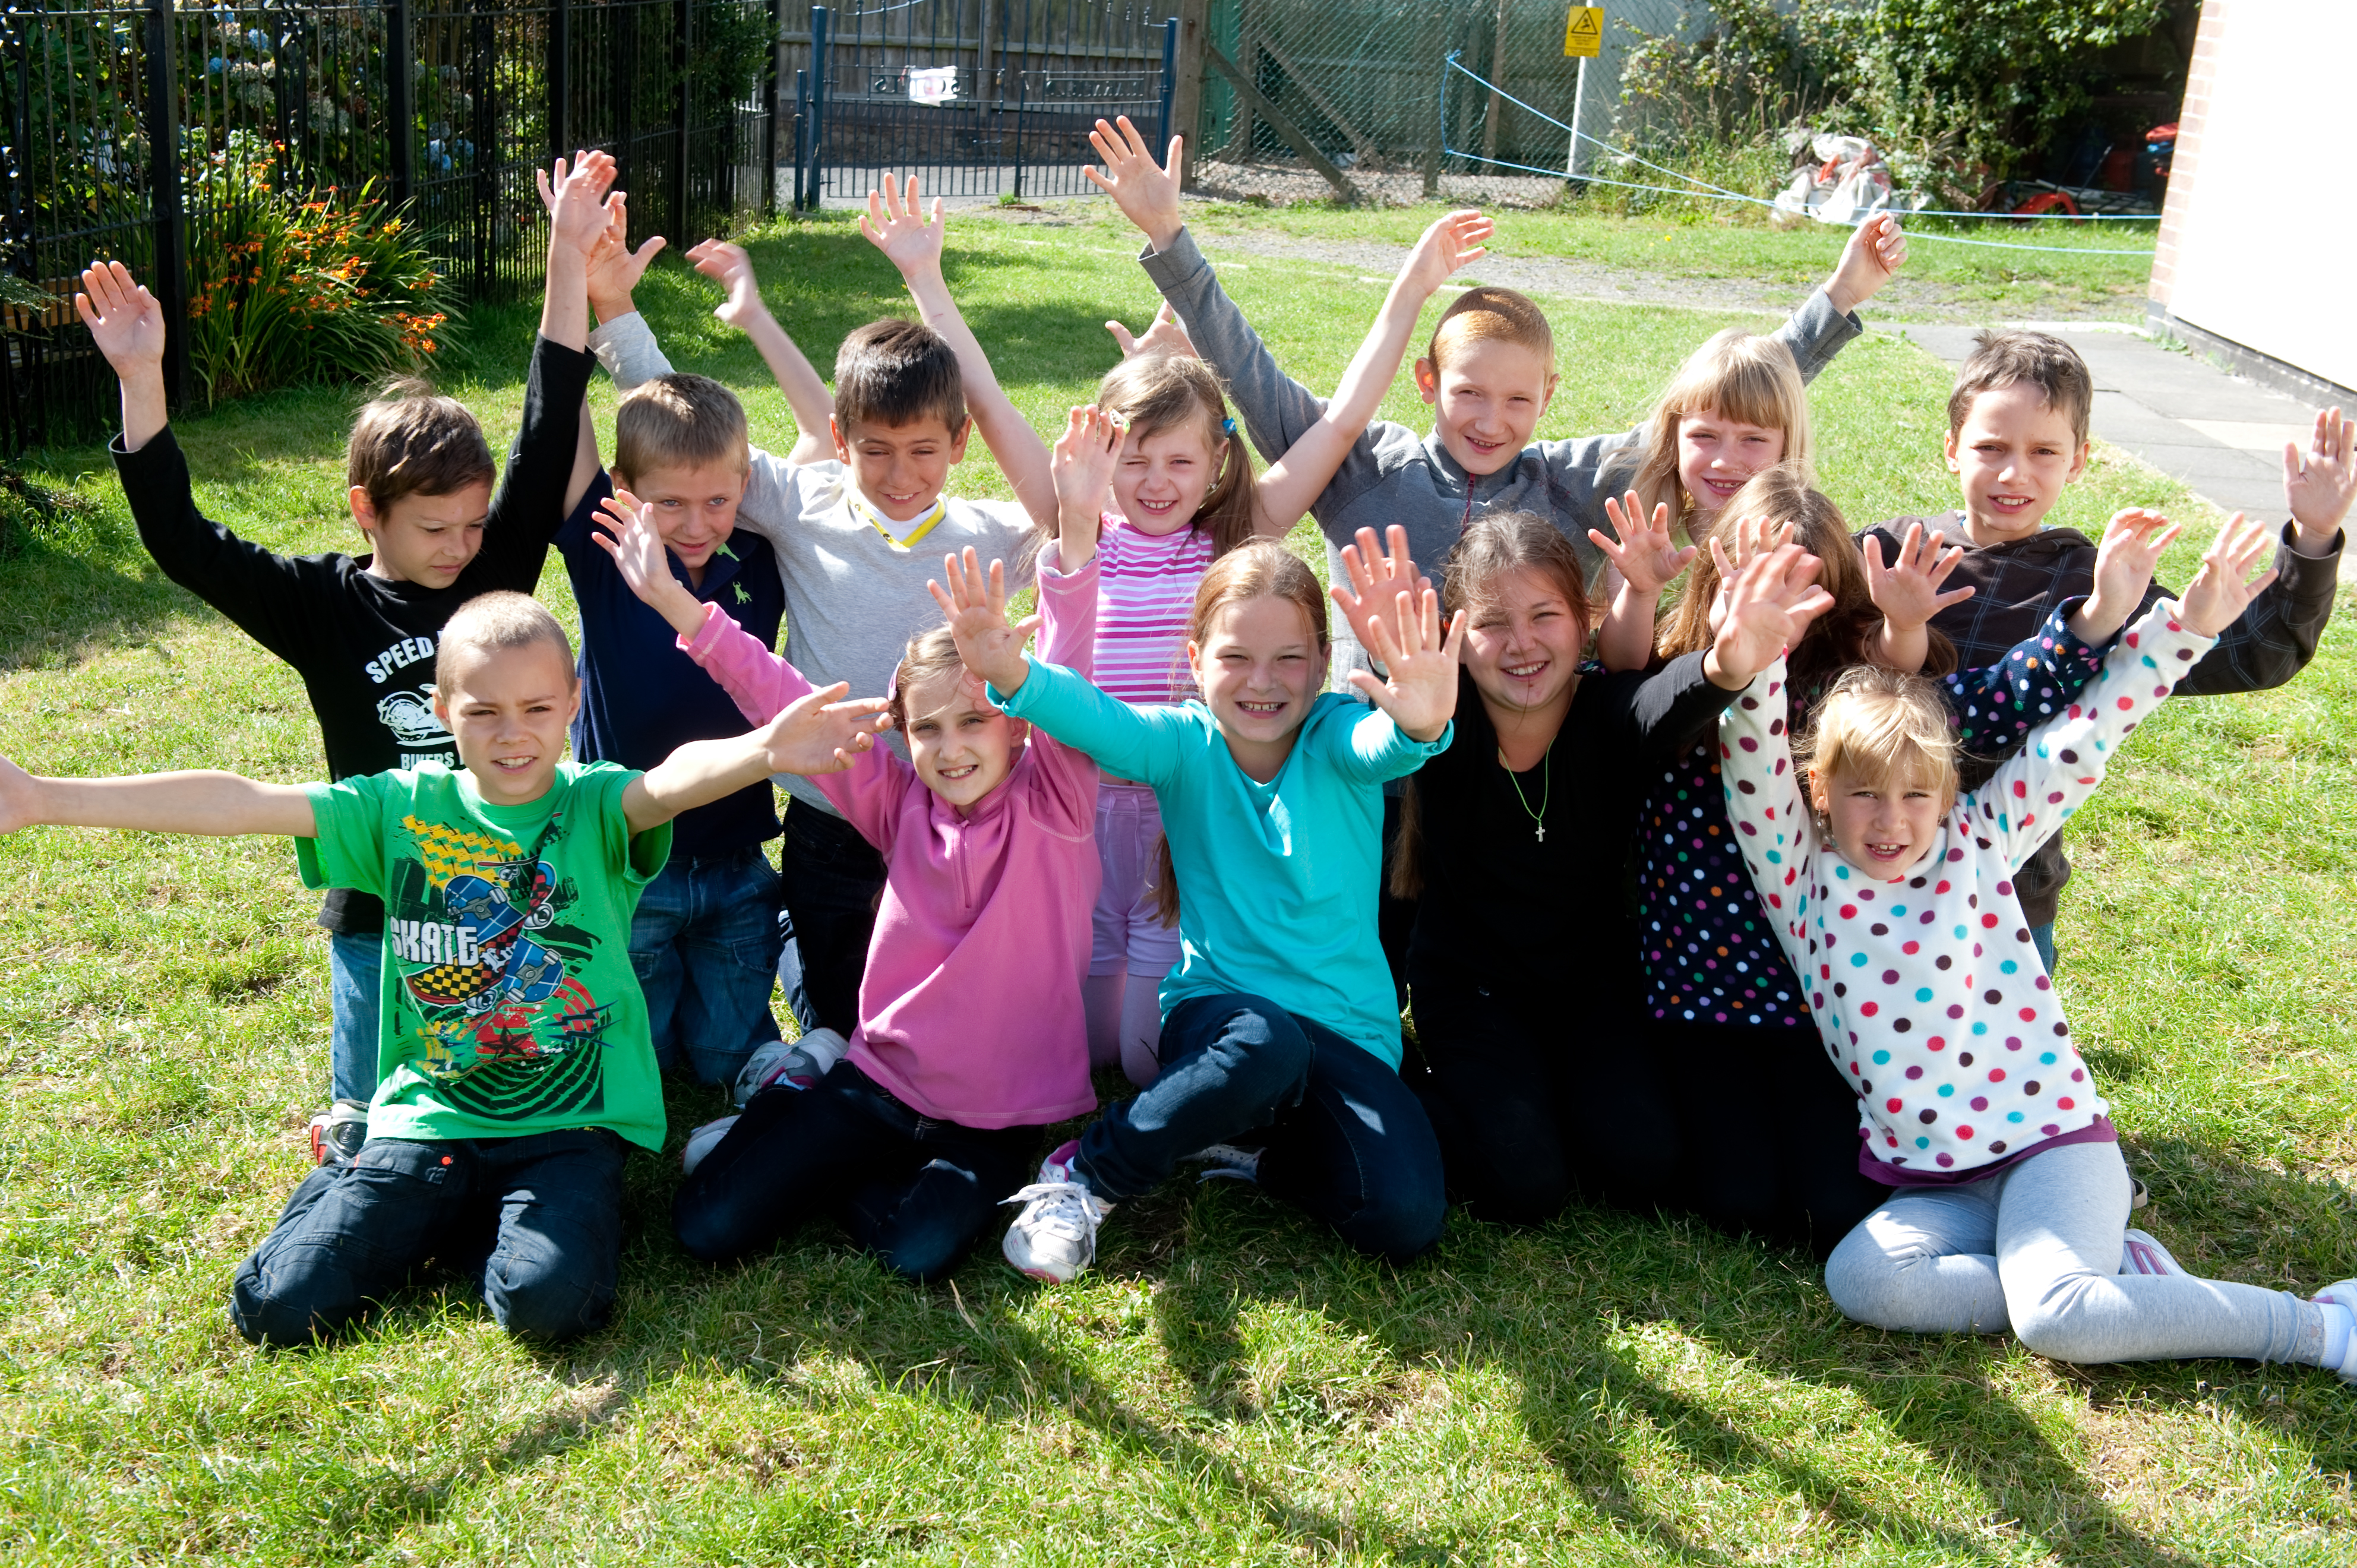 FRIENDS OF CHERNOBYL'S CHILDREN (WEST LEICESTERSHIRE)